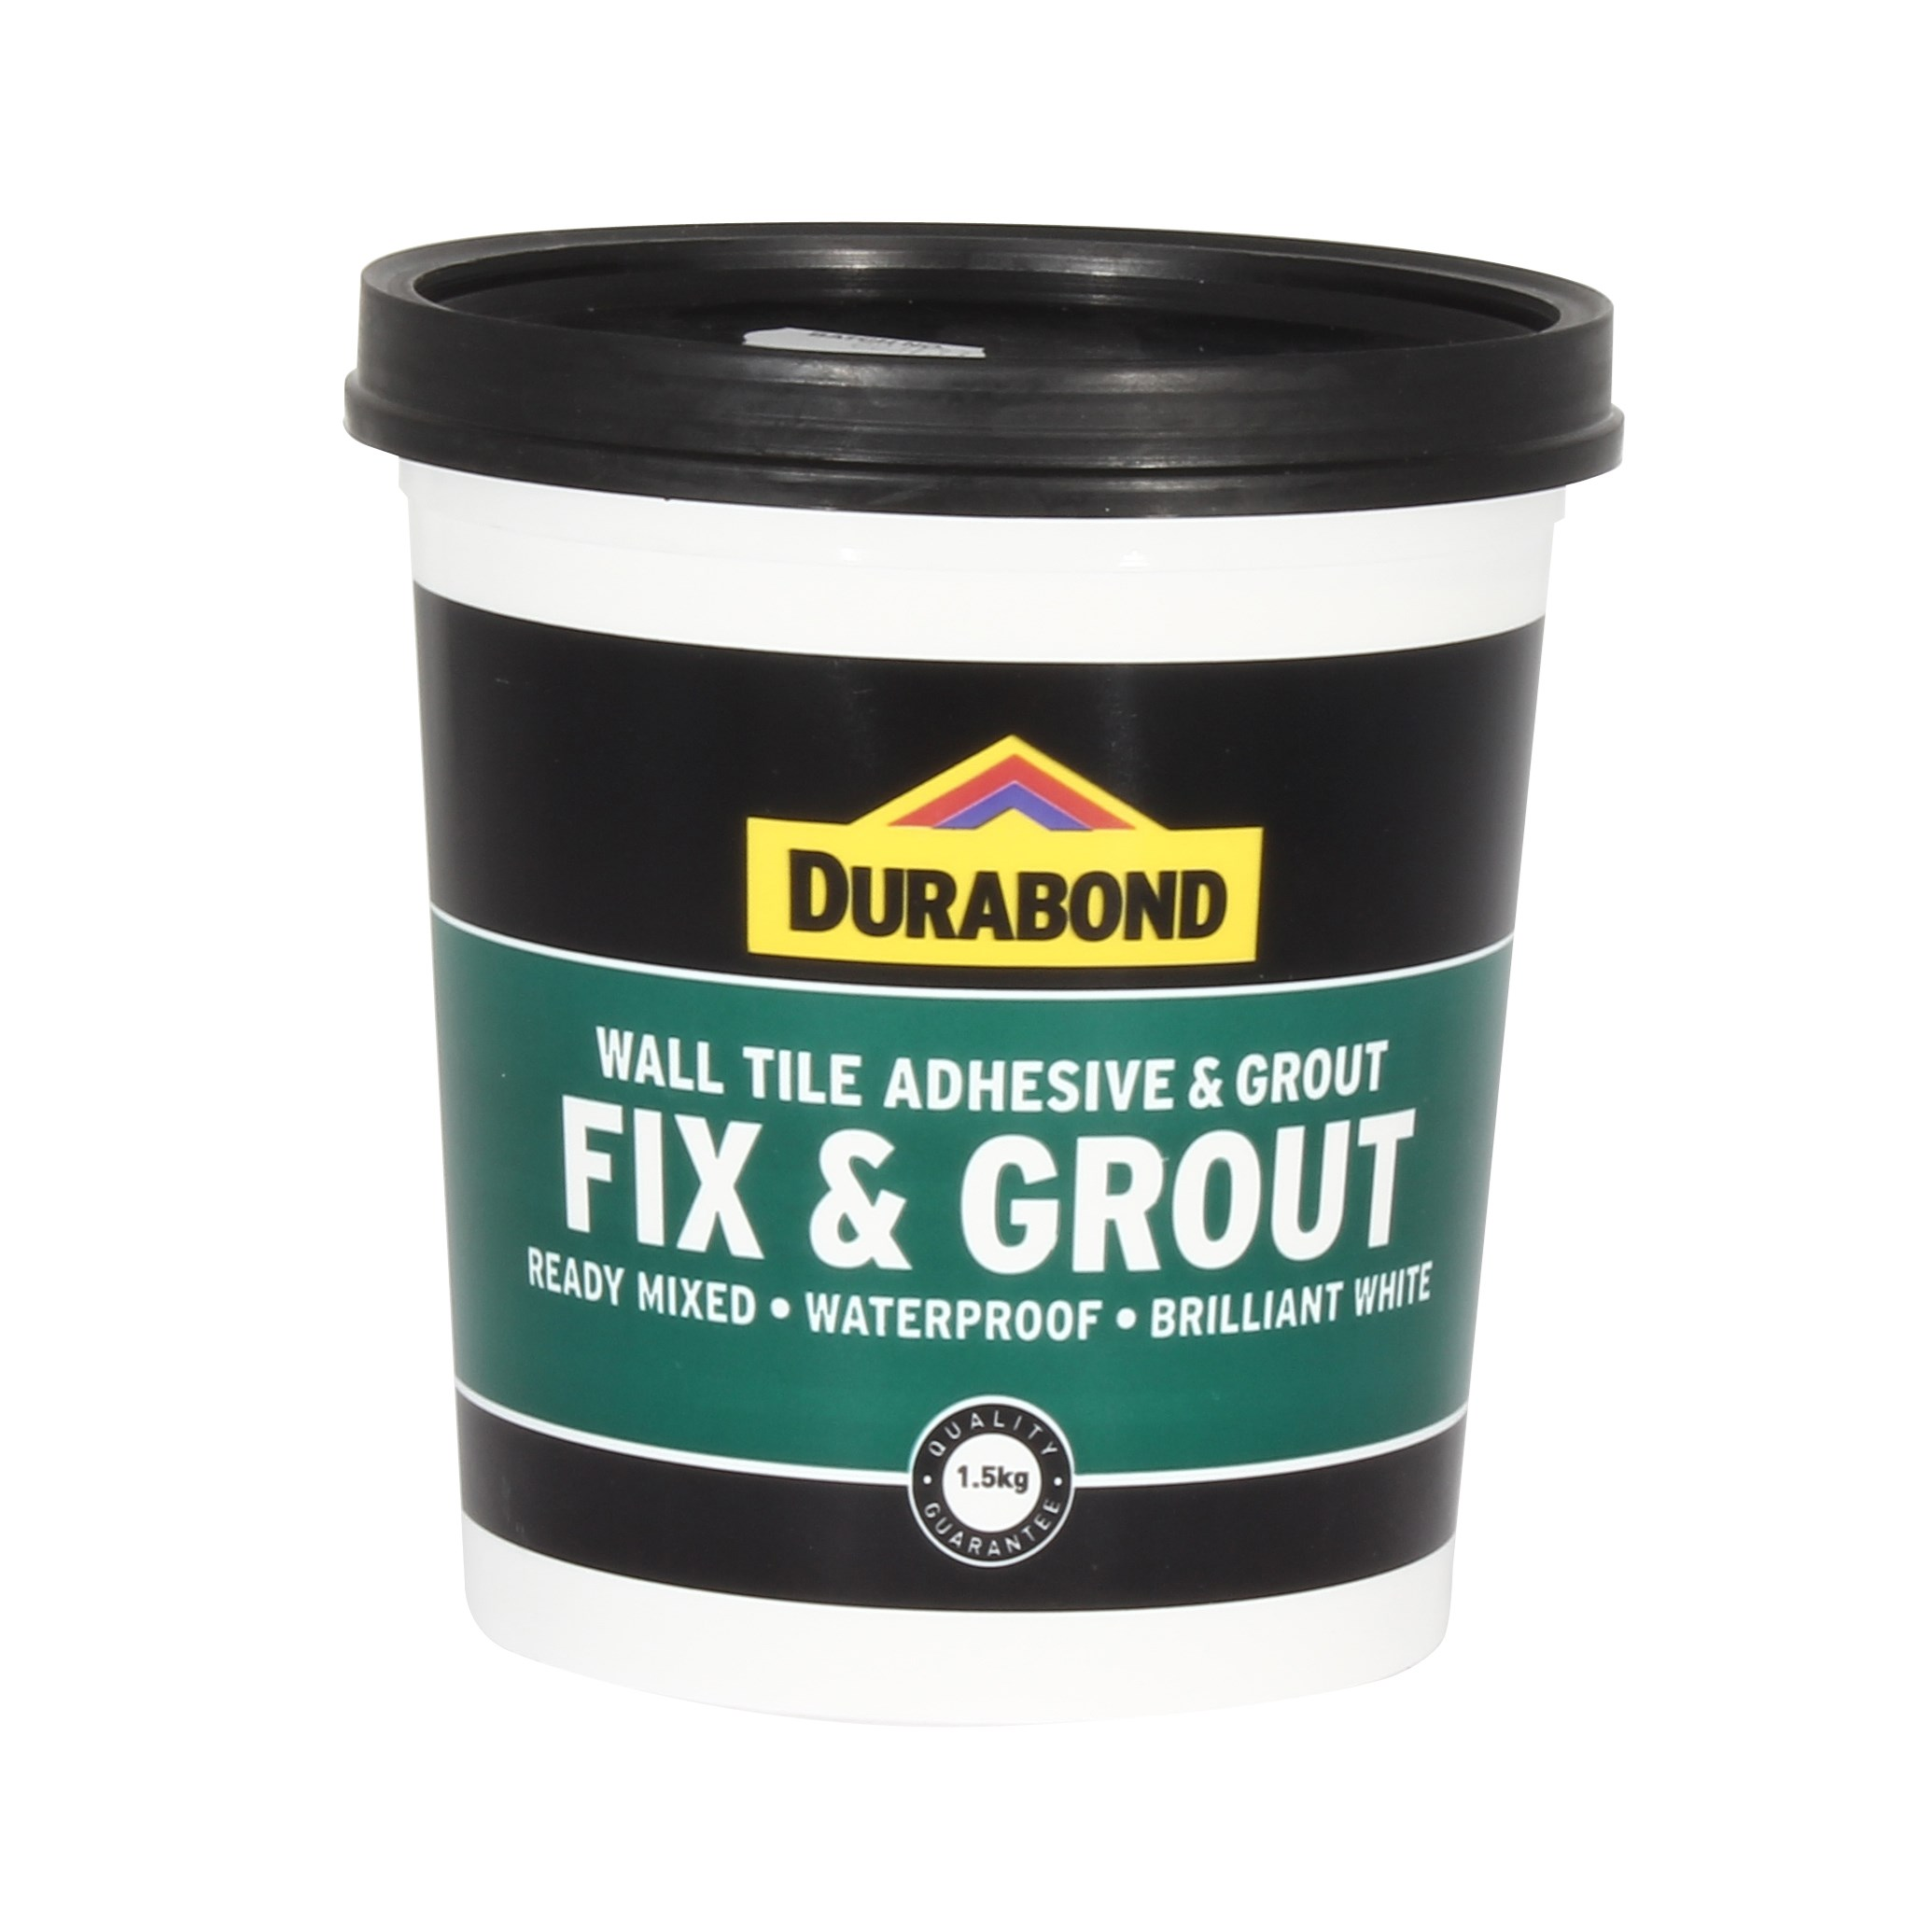 Durabond  Waterproof Fix & Grout - 1.5 kg